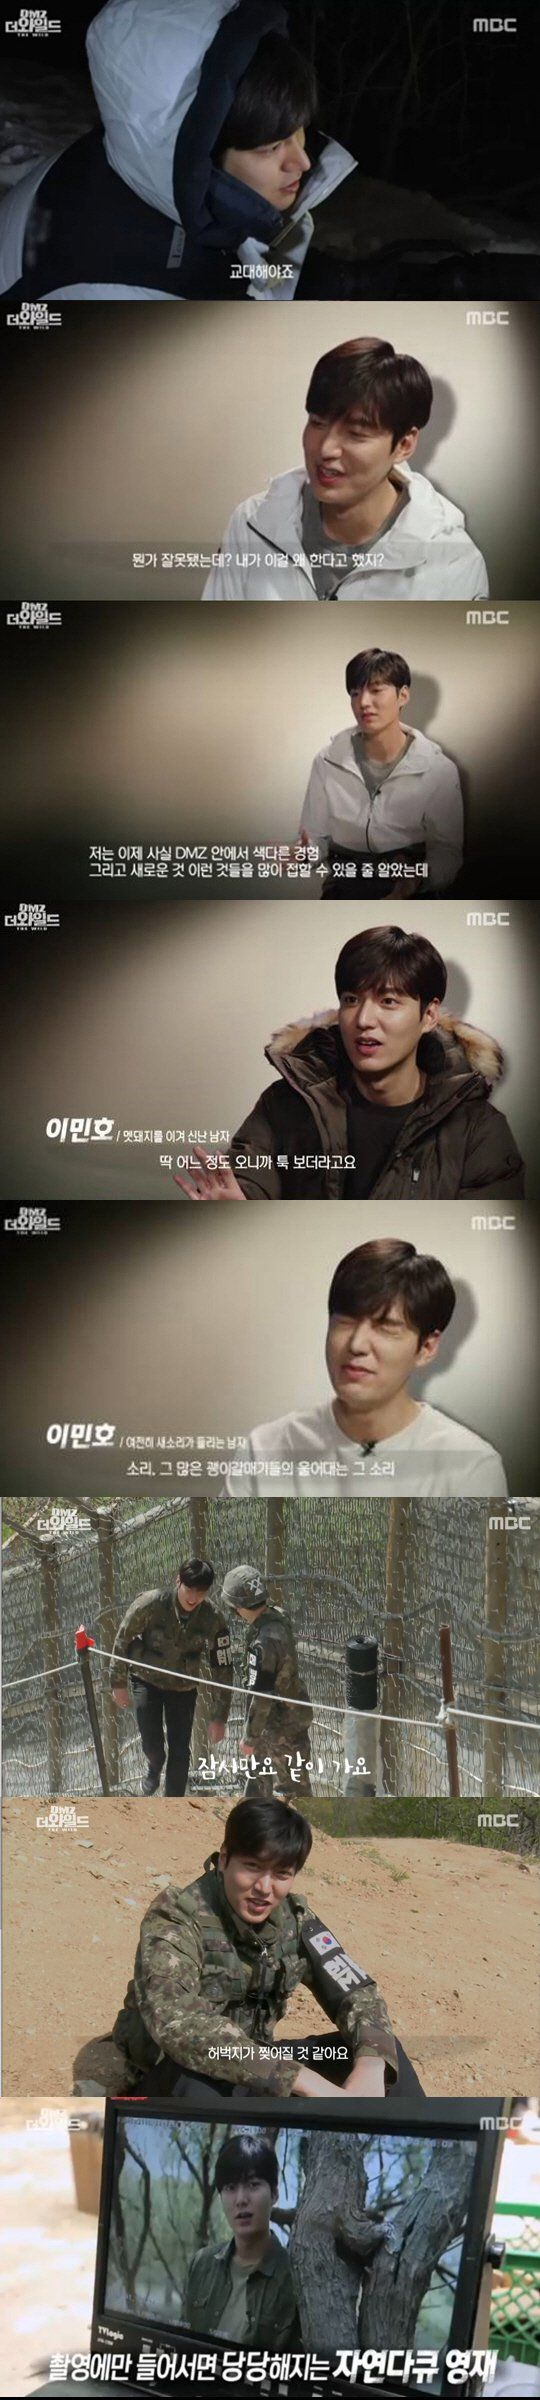 """Why am I here?"" Lee Min-ho experiences the DMZ"